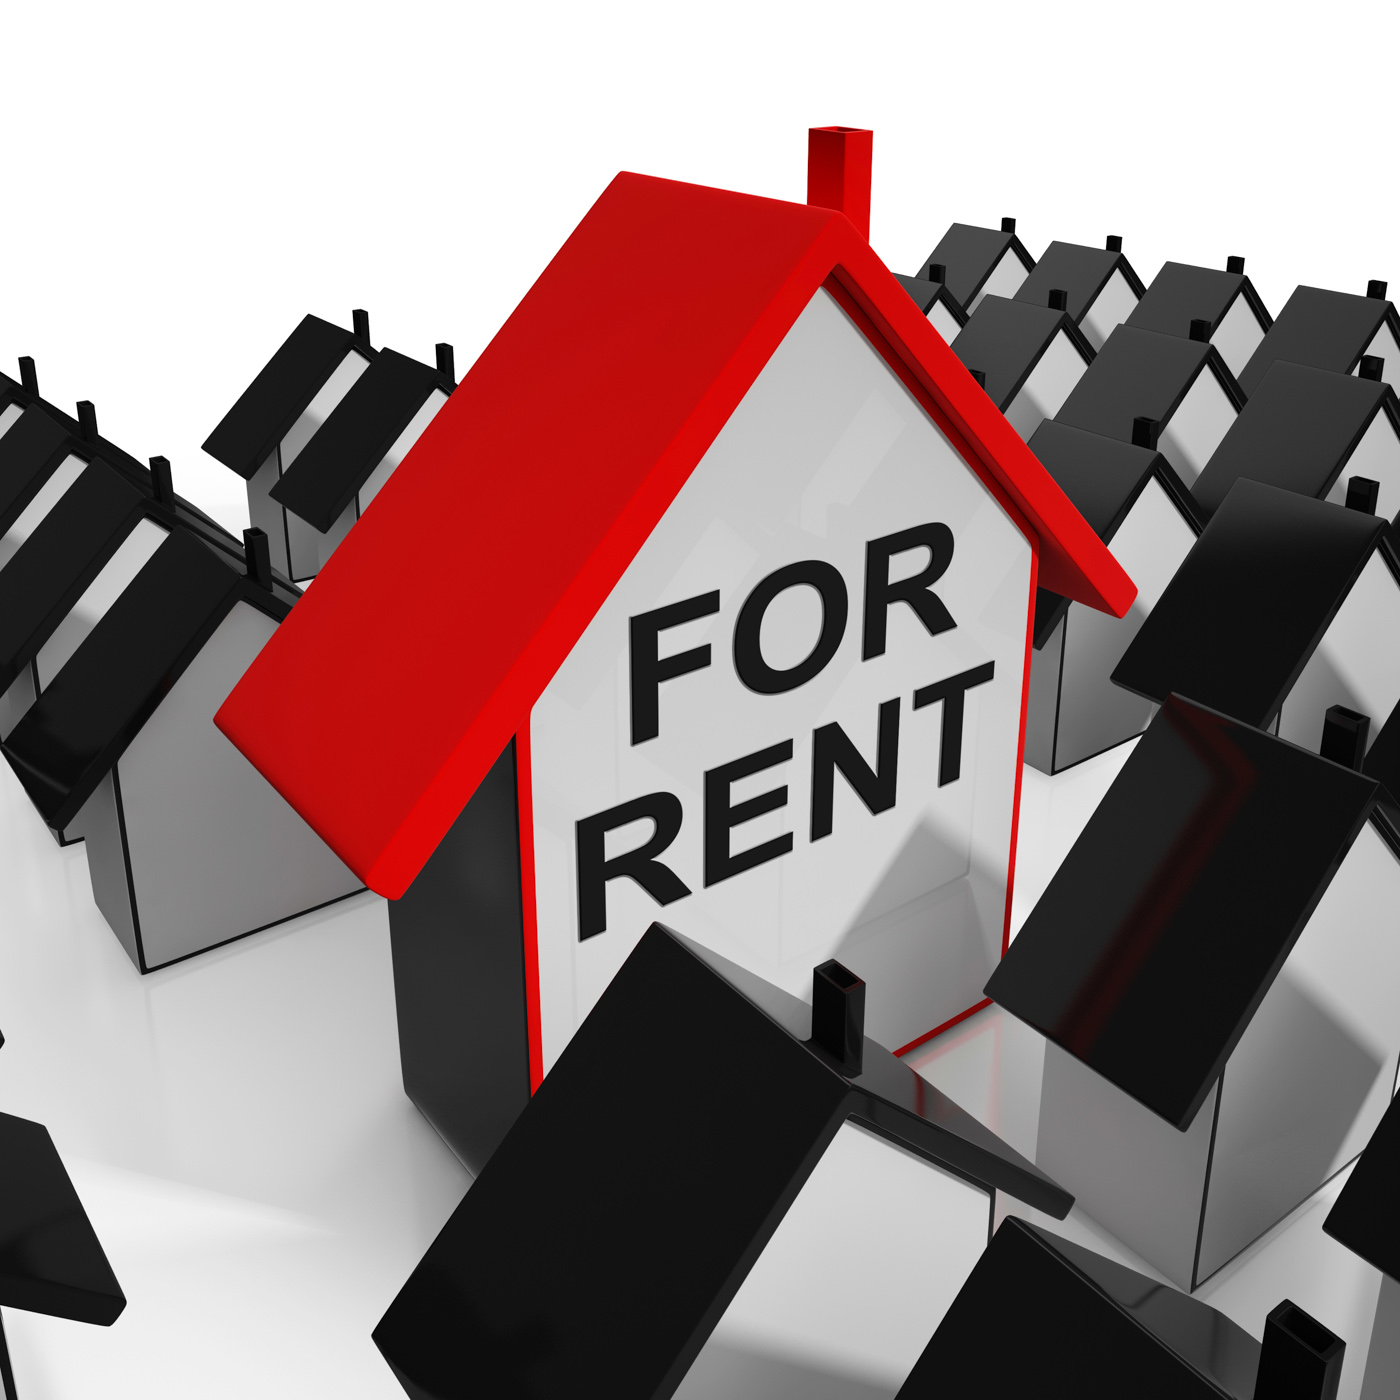 For Rent House Means Leasing To Tenants, Sublease, Rentout, Rental, Rent, HQ Photo